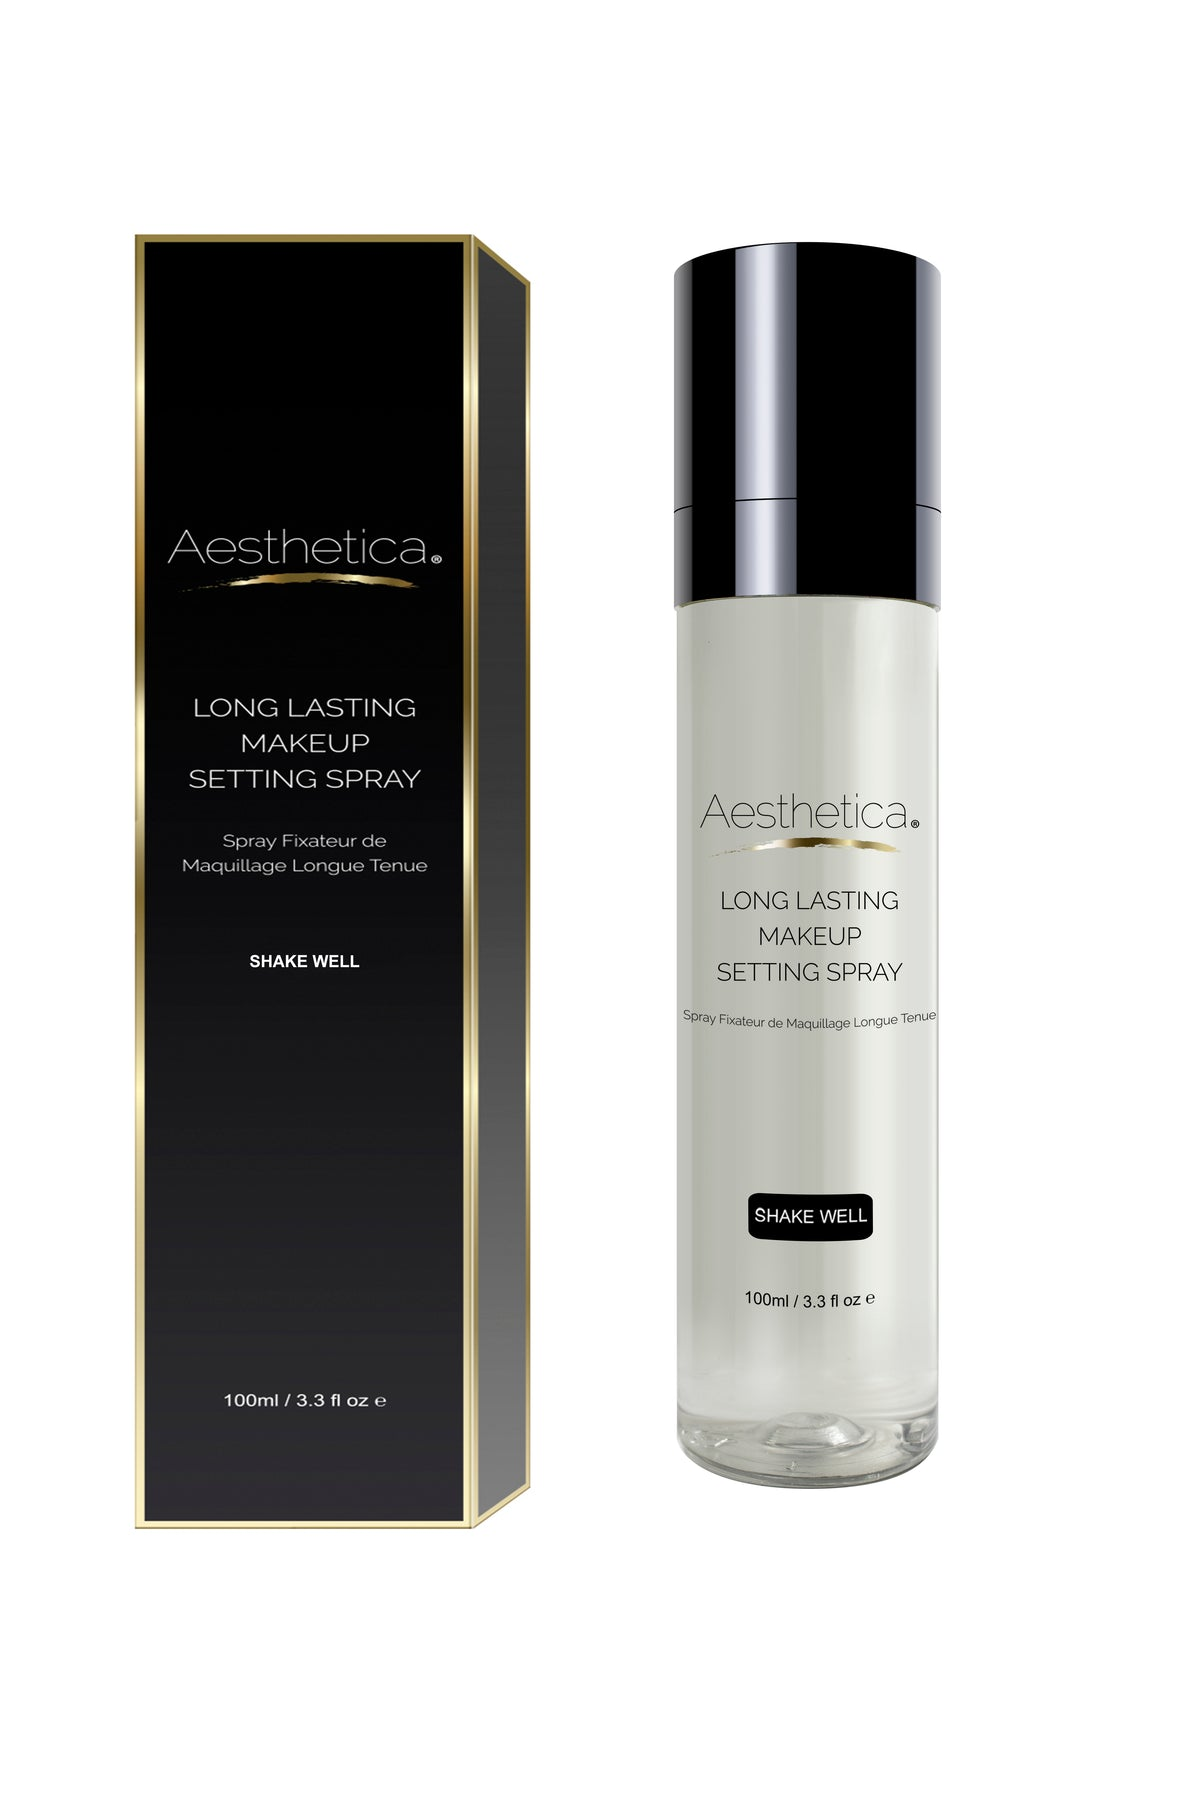 Aesthetica Long Lasting Makeup Setting Spray